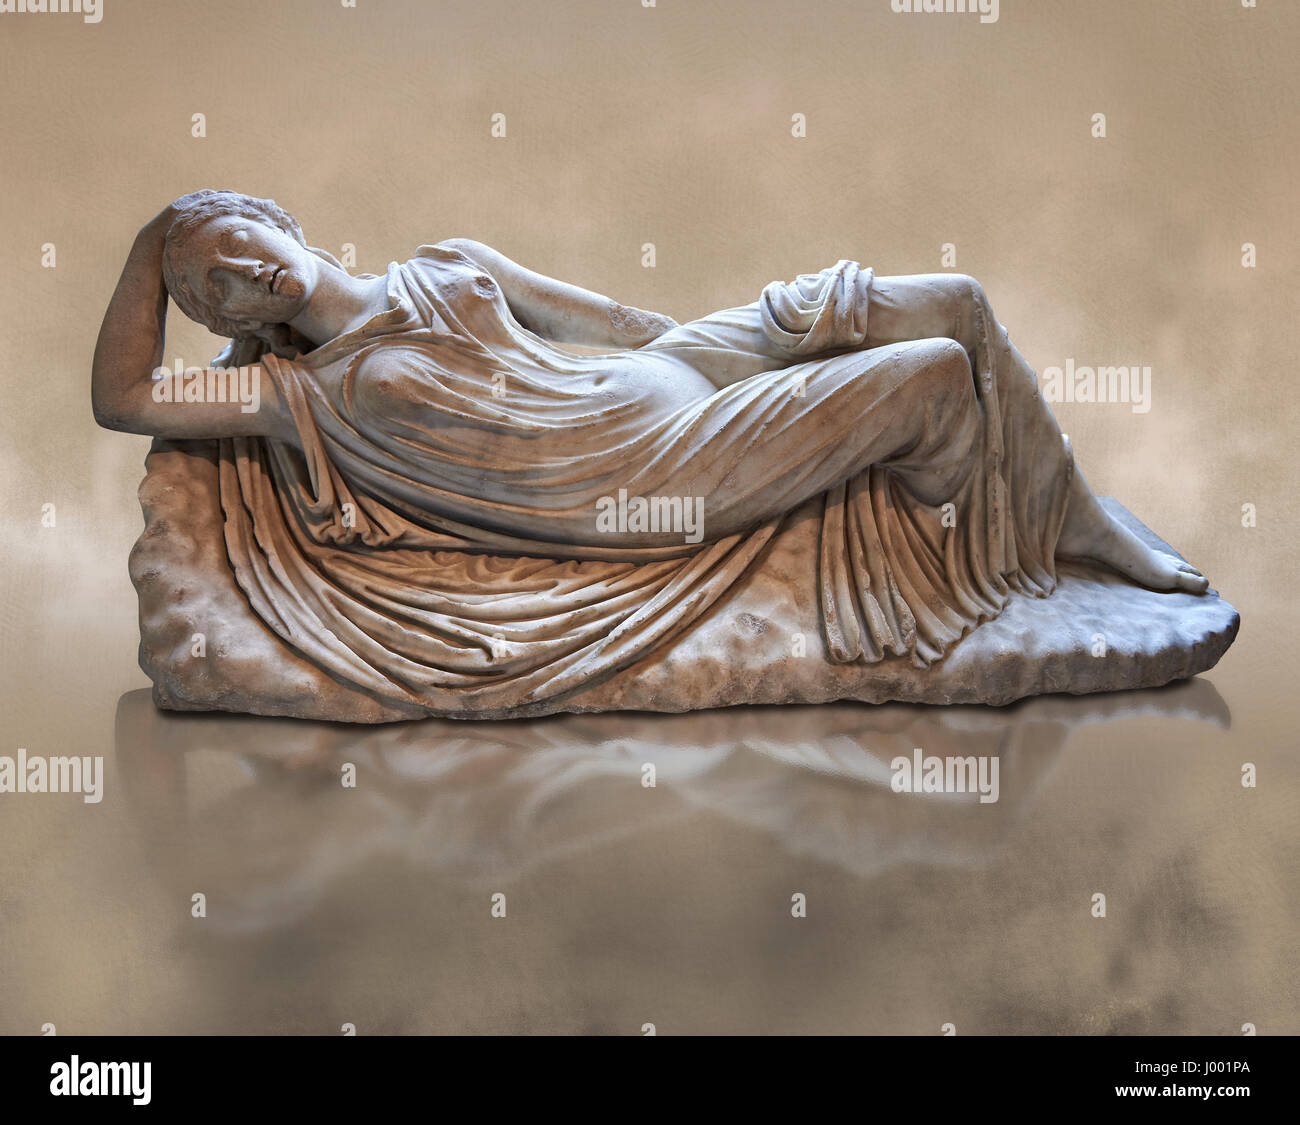 Ariadne sleeping, 2nd cent AD Marble Roman statue from Italy.  inv MR 311or Ma 340, Louvre Museum Paris Stock Photo